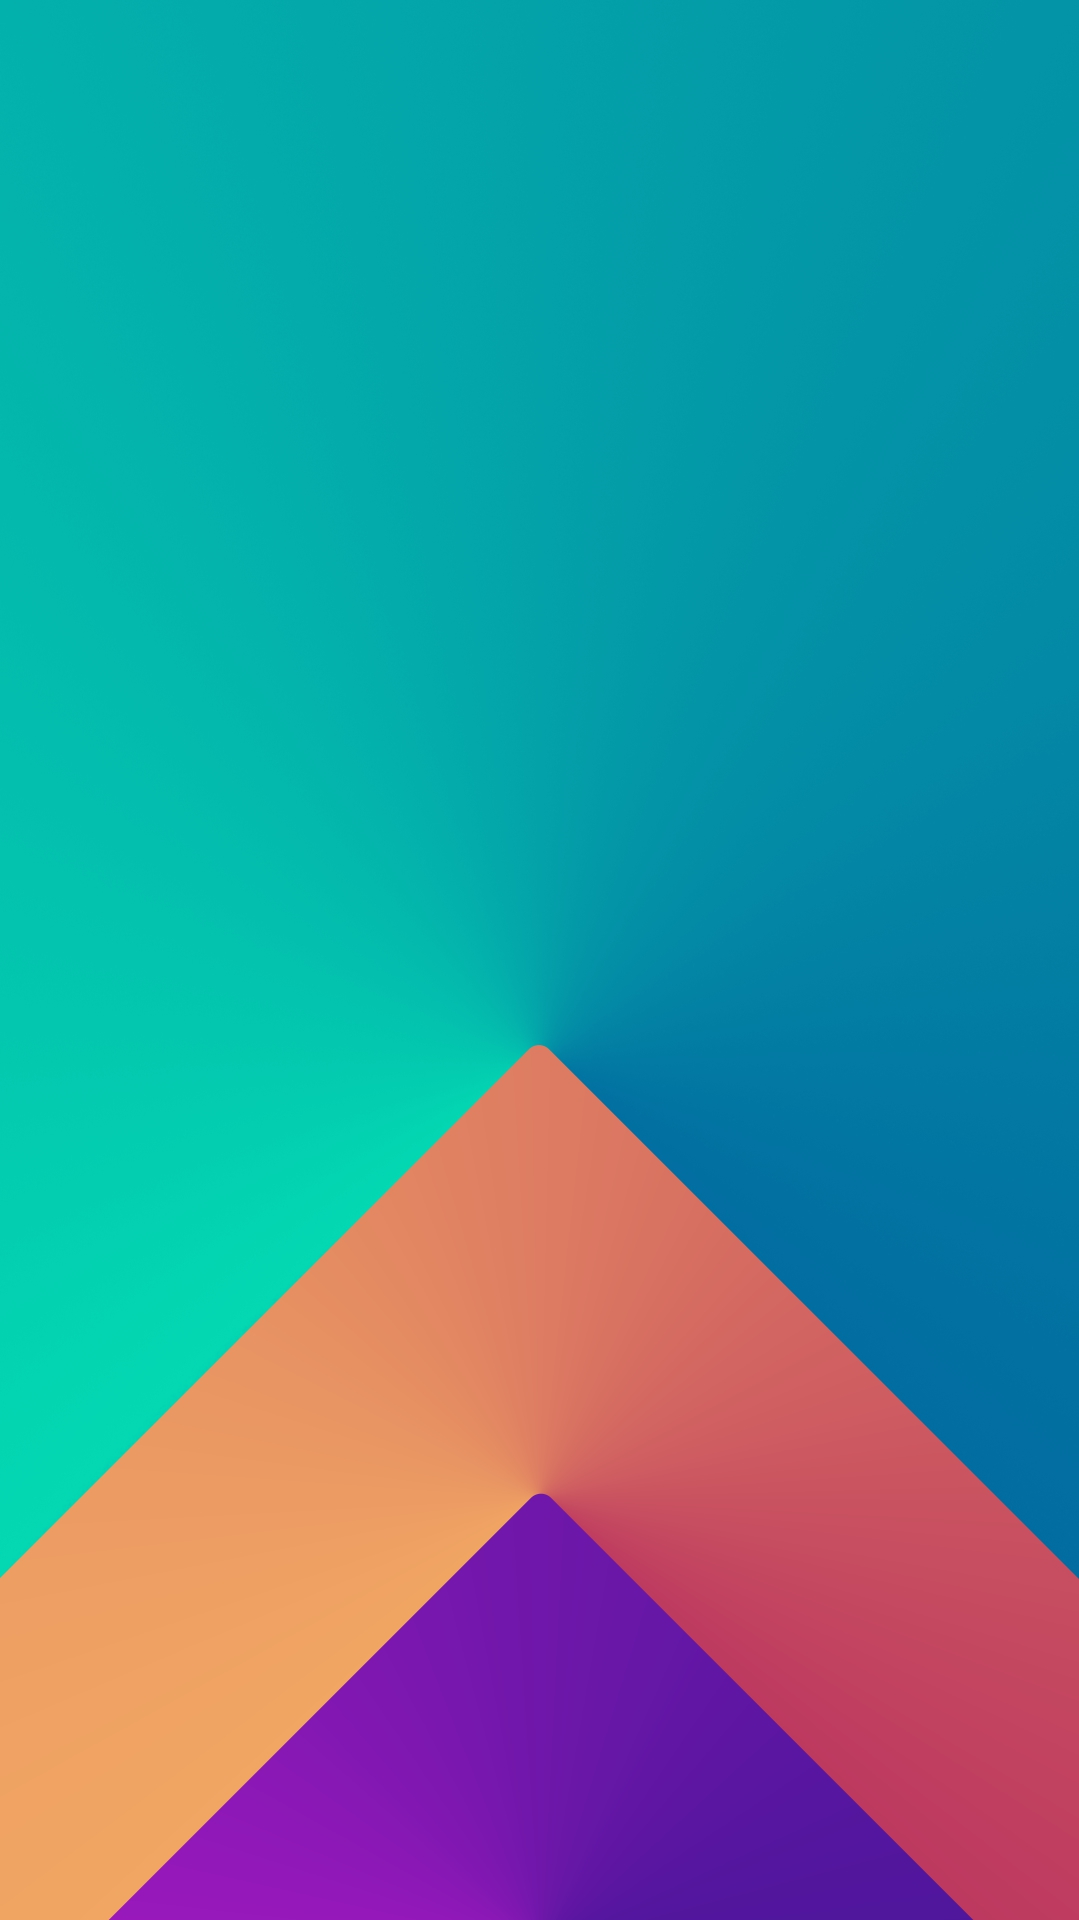 C9 Iphone Wallpaper Triangle Colours 3d Iphone Wallpaper Iphone Wallpapers